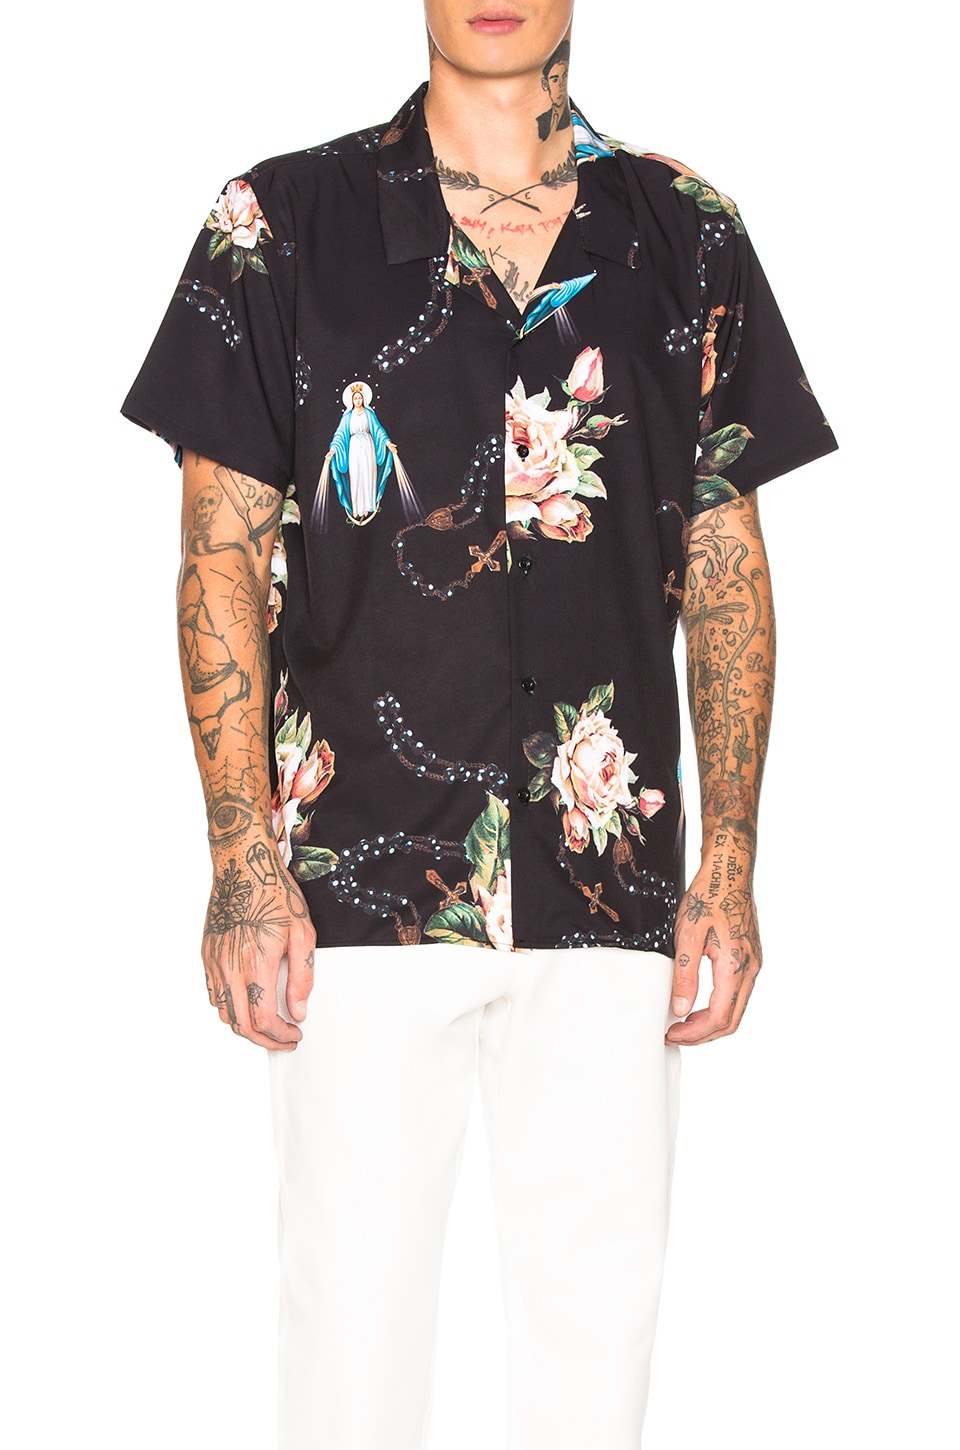 Civil Regime Rosary Short Sleeve Shirt in Black